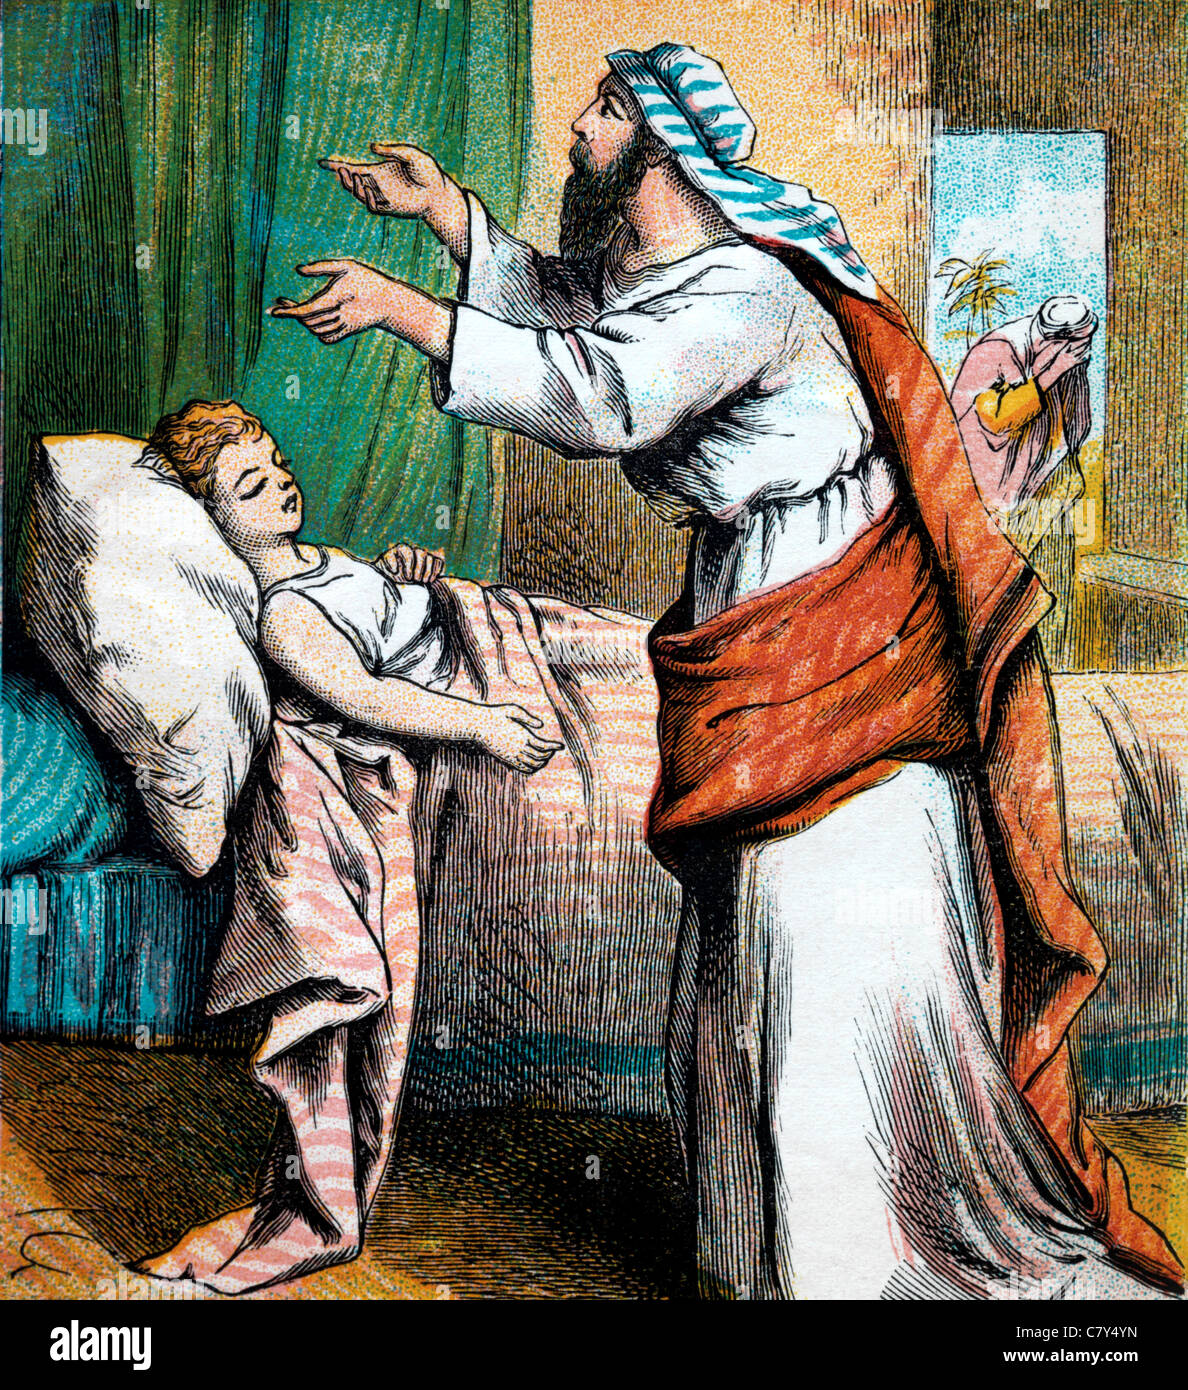 Bible Stories- Illustration Of Elijah Praying To The Lord To Revive The Widow Of Zarephath's Son - Stock Image